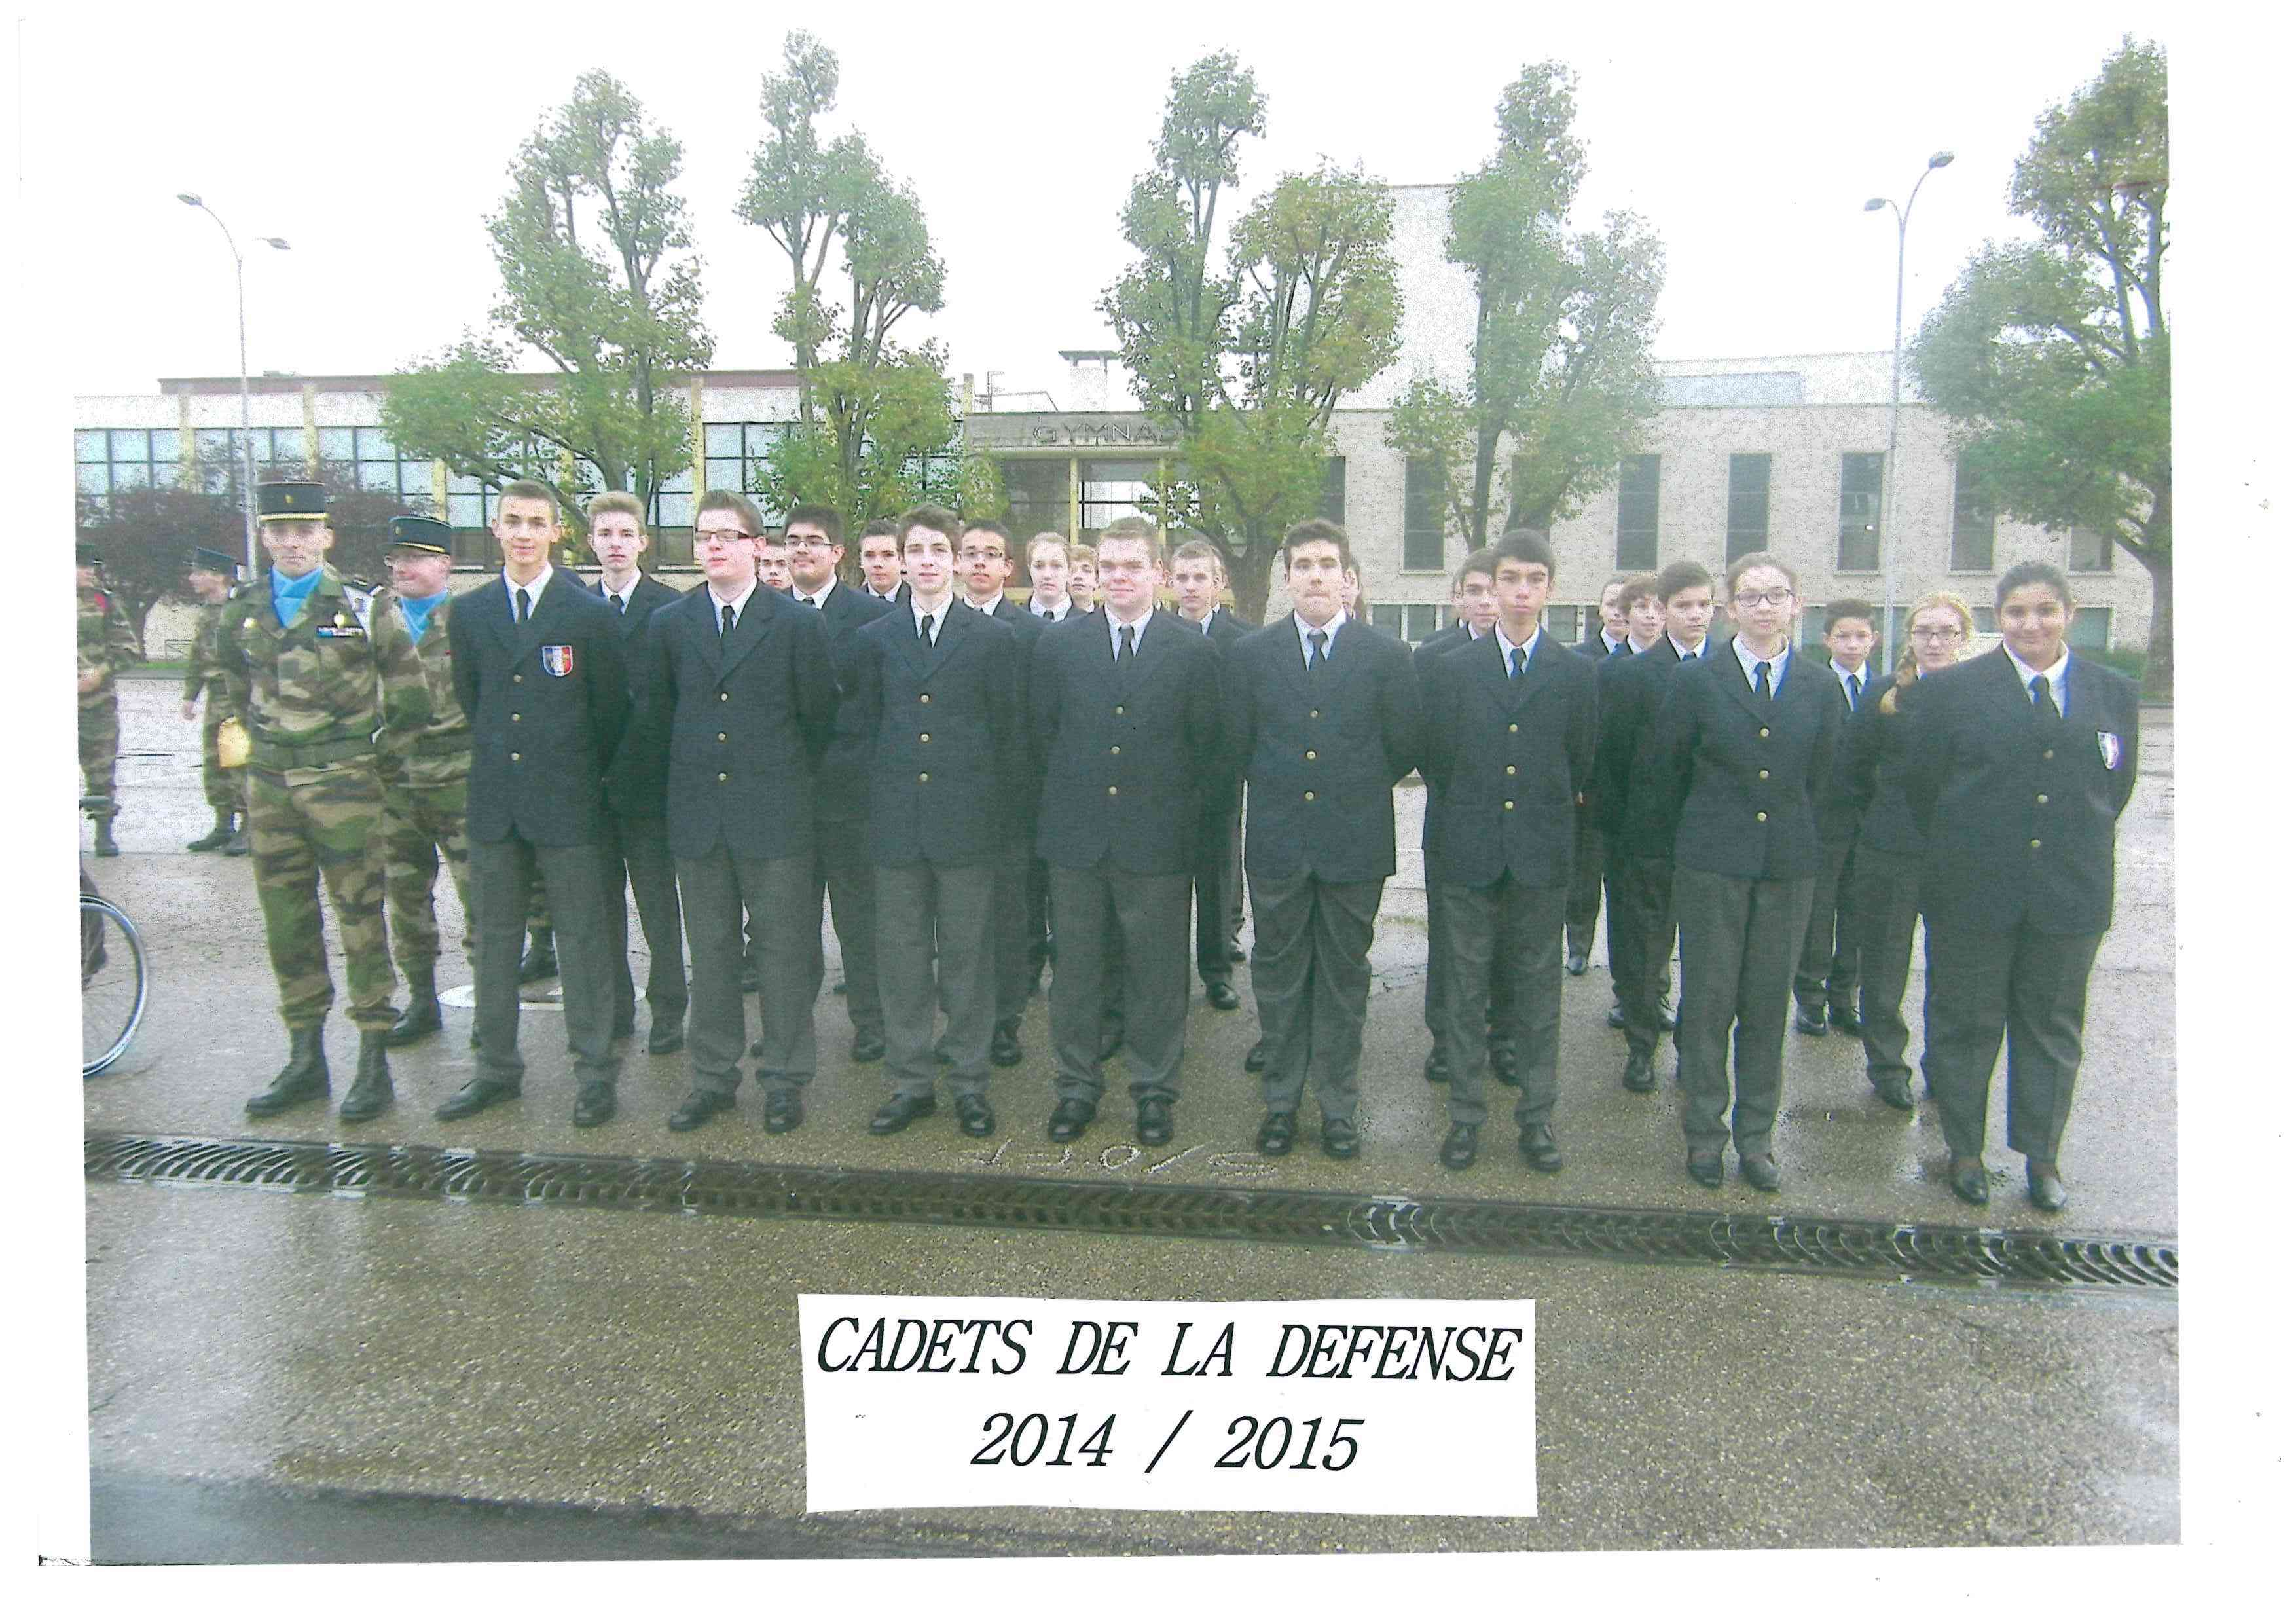 cadets defense 2014-2015.jpg